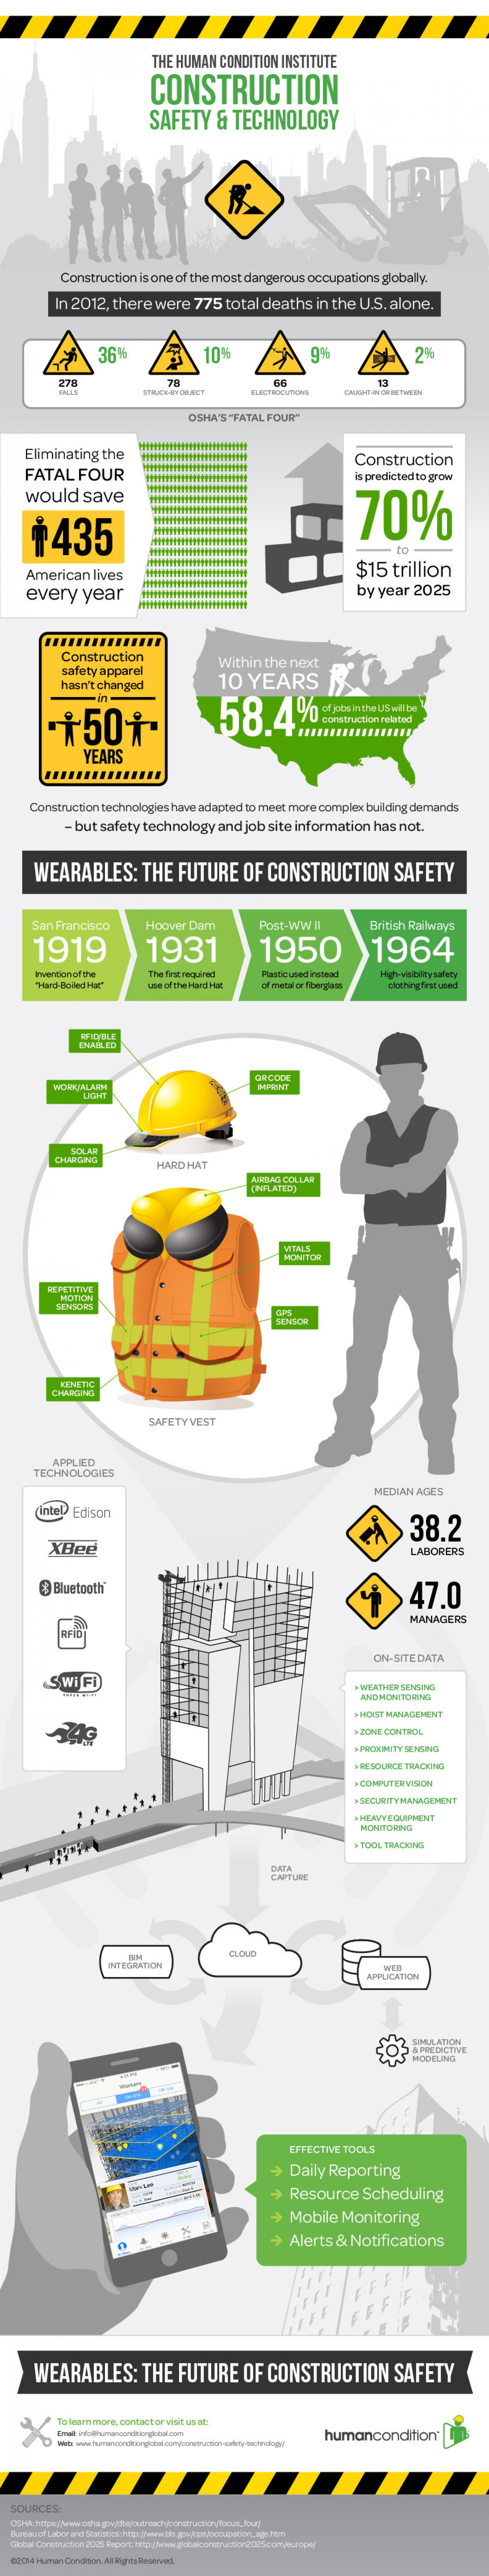 Wearables The Future of Construction Safety Infographic